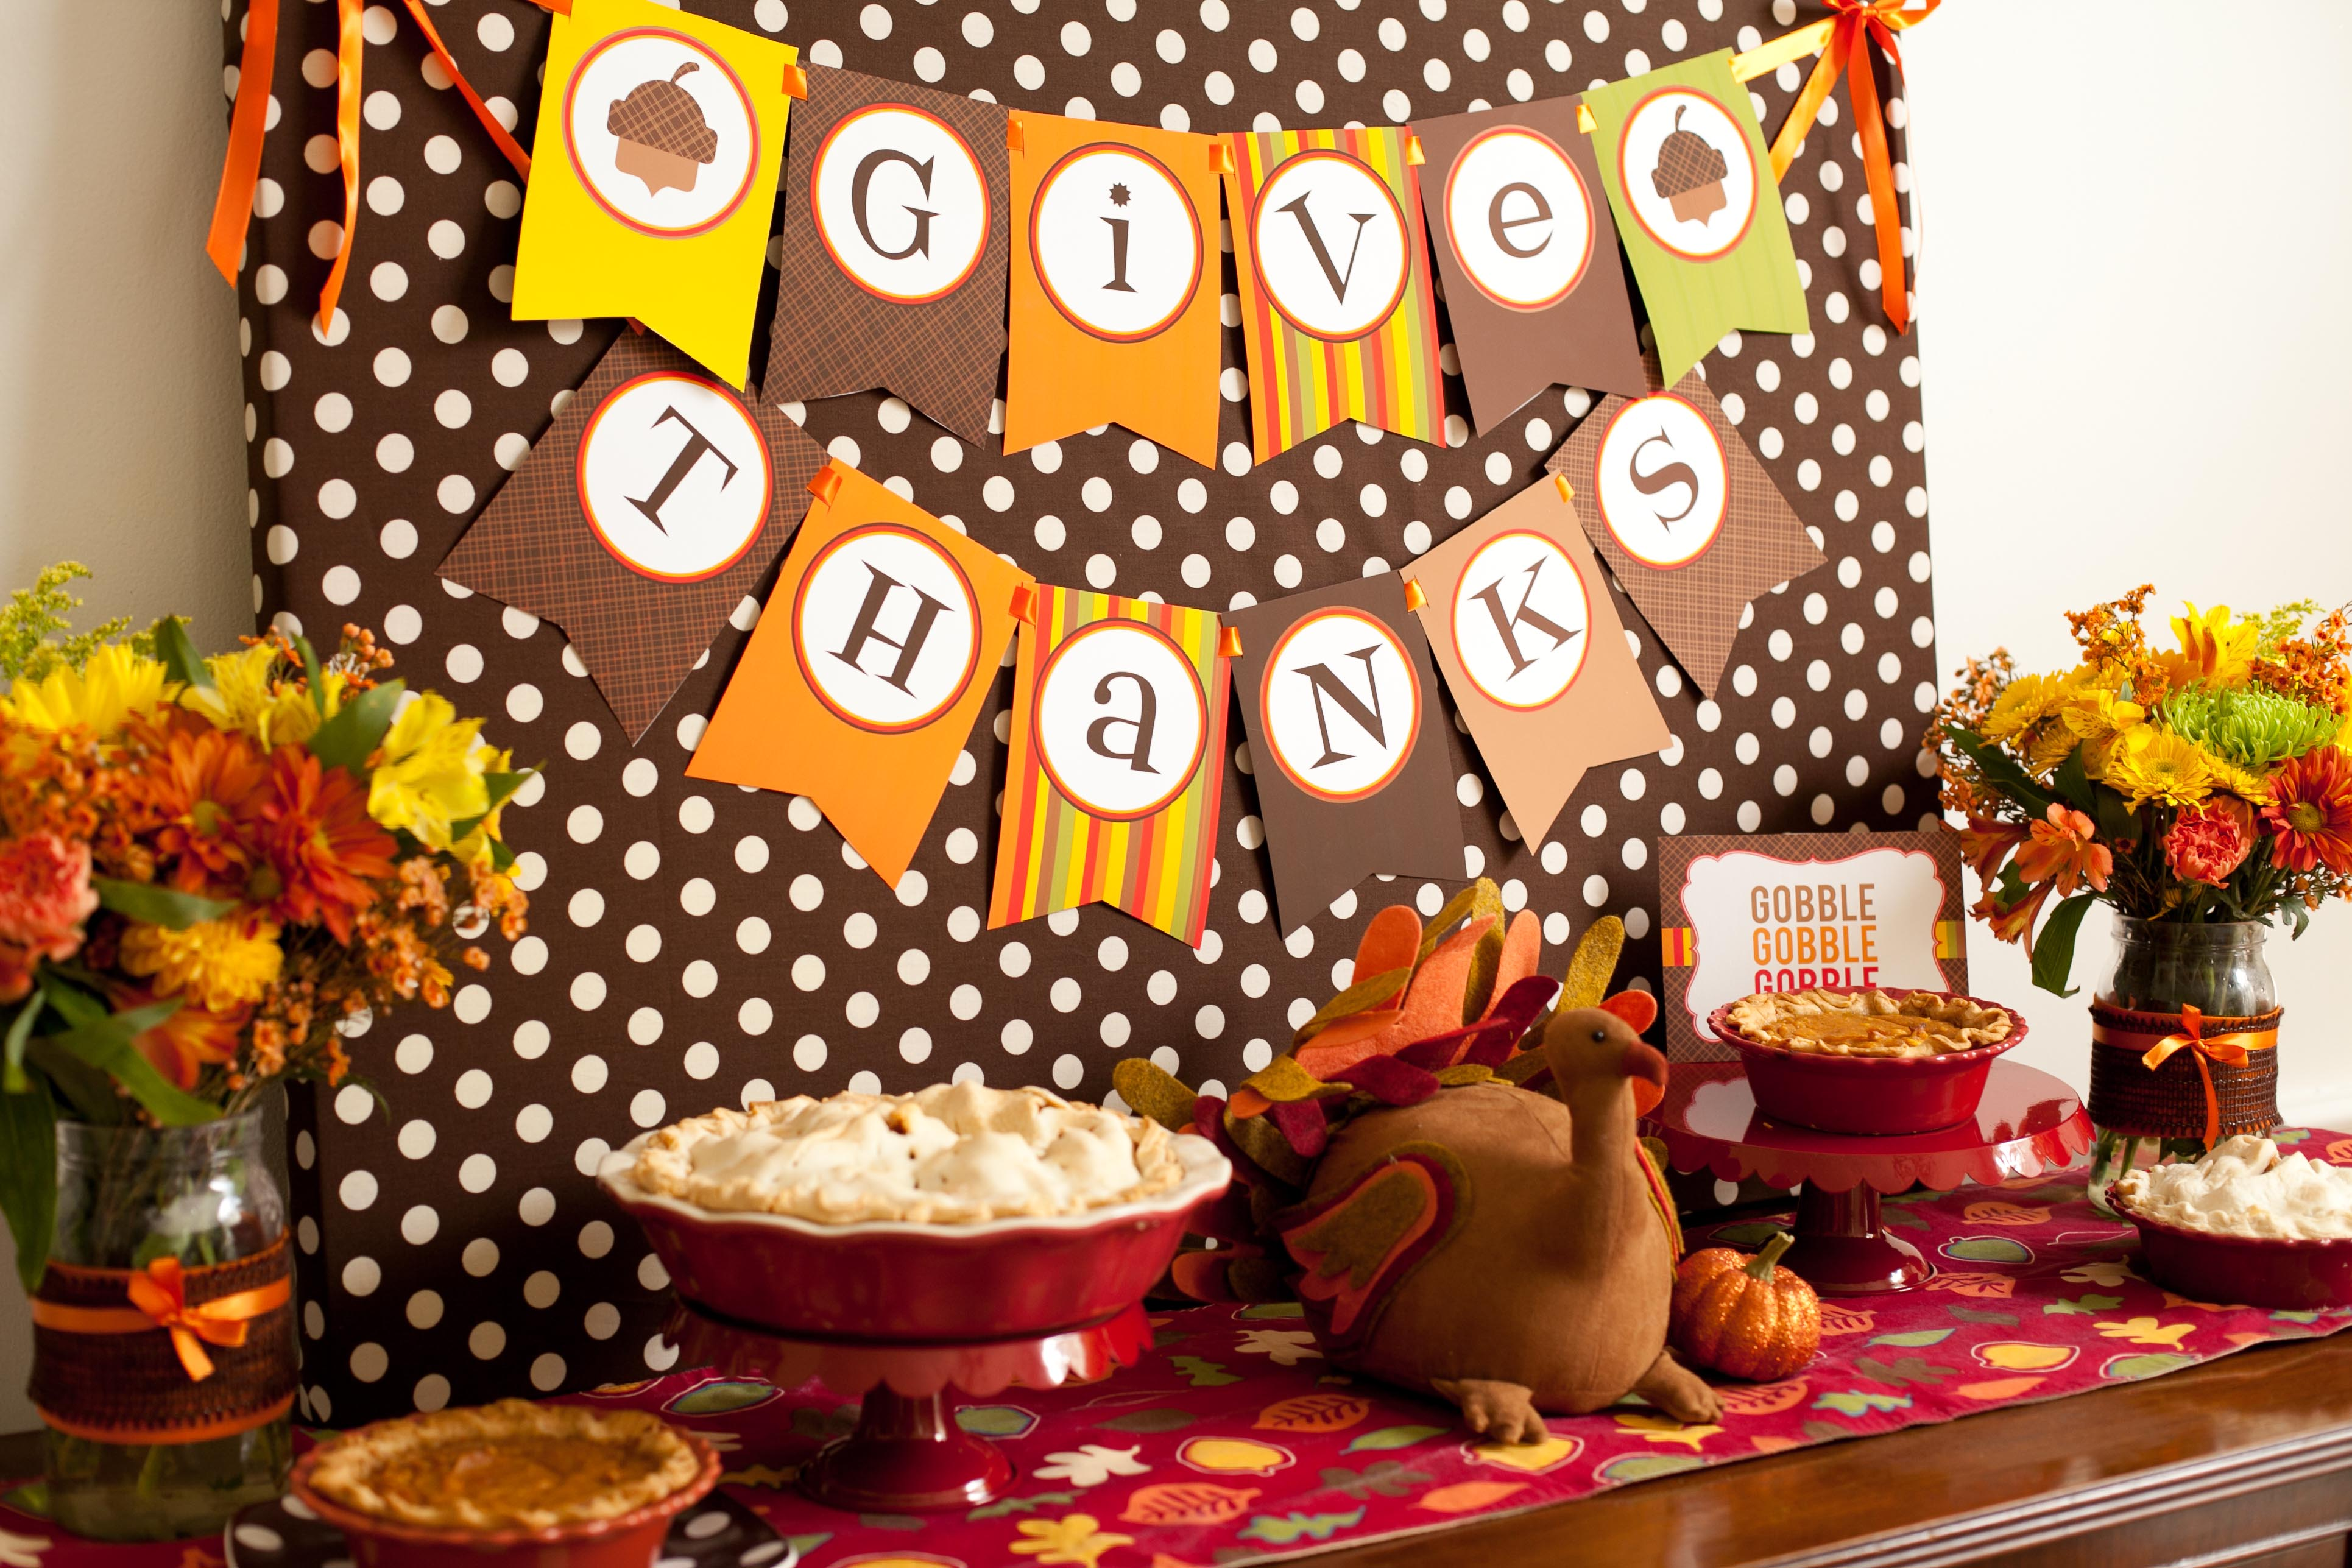 Happy Thanksgiving Decoration Ideas & Images Free Download